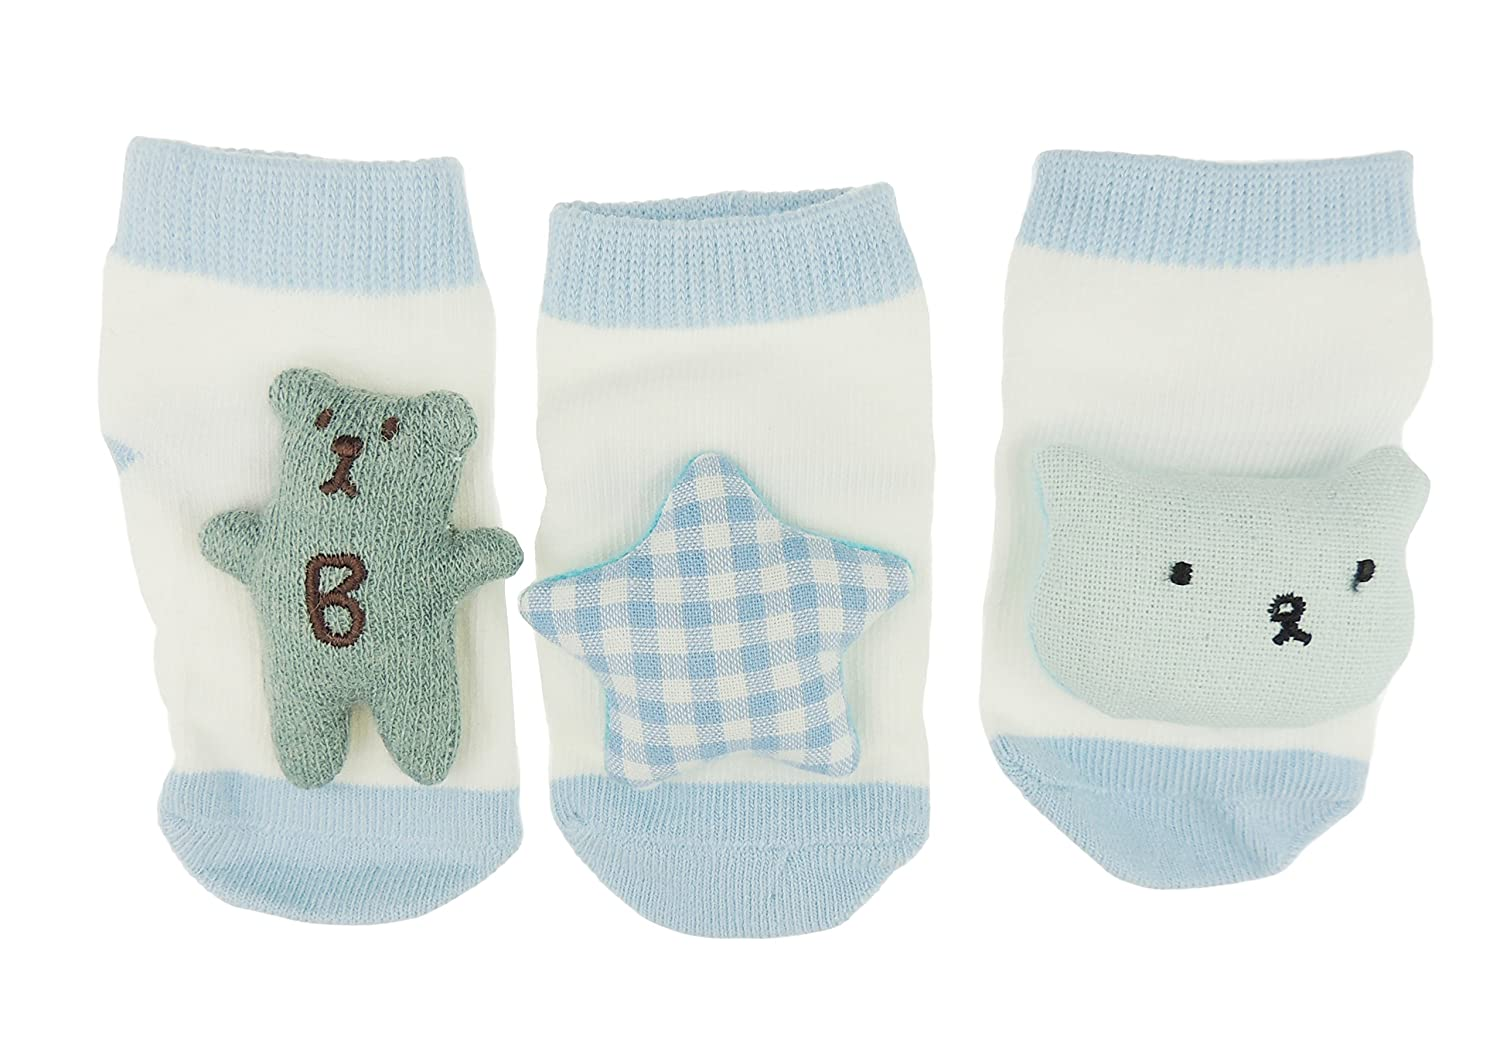 3D Teddy Comforter /& Knitted Sock Boots Gift Set Personalised White Baby Shawl Blanket